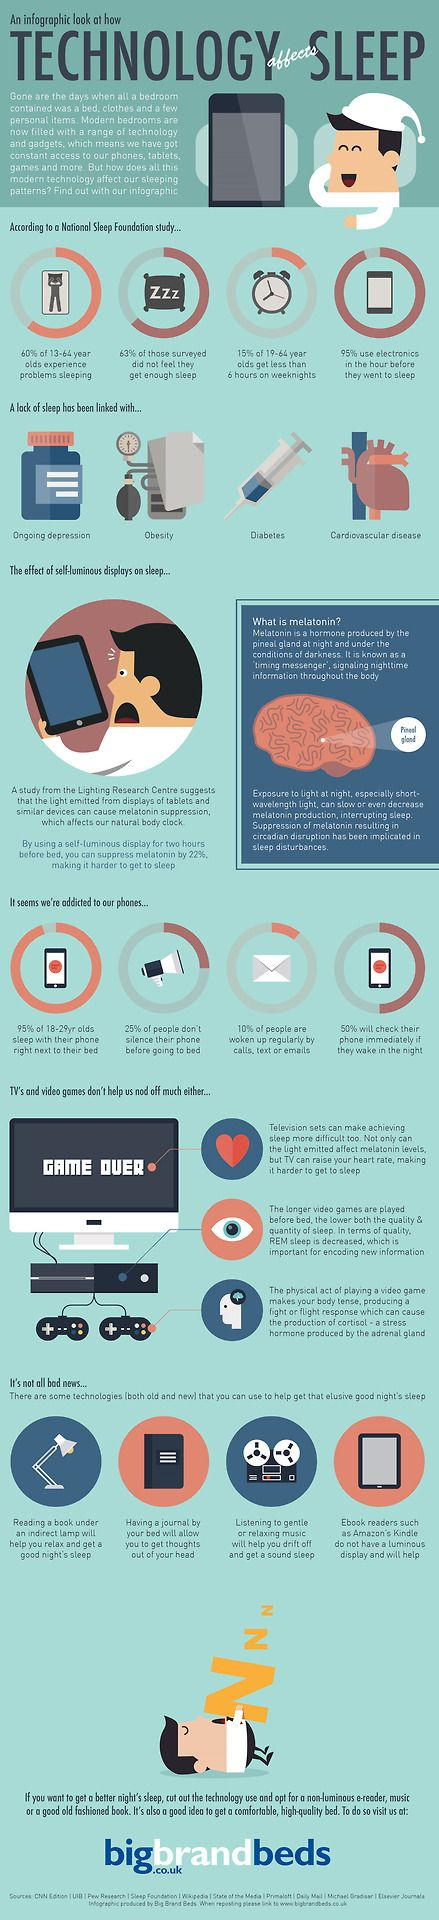 An infographic look at how technology affects sleep. #infographic #psychology #sleep #technology #health #MentalHealth #mental #depression #disorder #obesity #diabetes #cardiovascular #hearth #melatonin #hormone #circadian #television #videogame #REM #cortisol #relax #relaxing #listening #music #ebook